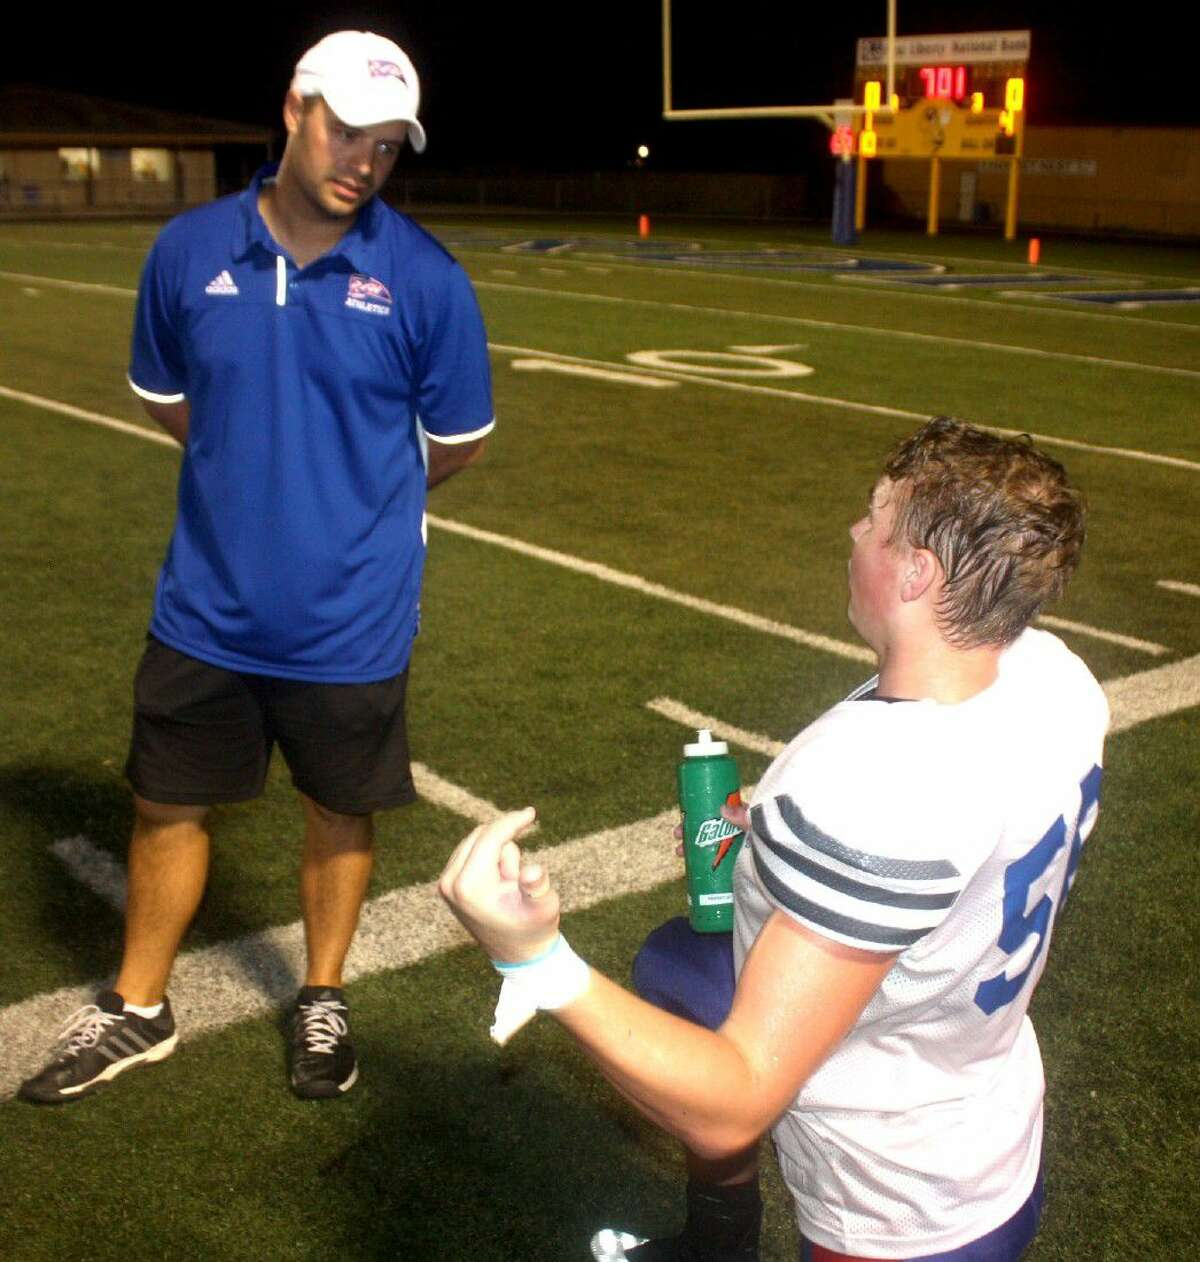 Walker Draeger explains to head coach Justin Larsen what happened after Hull-Daisetta scored its first touchdown of Thursday's scrimmage in Hardin.